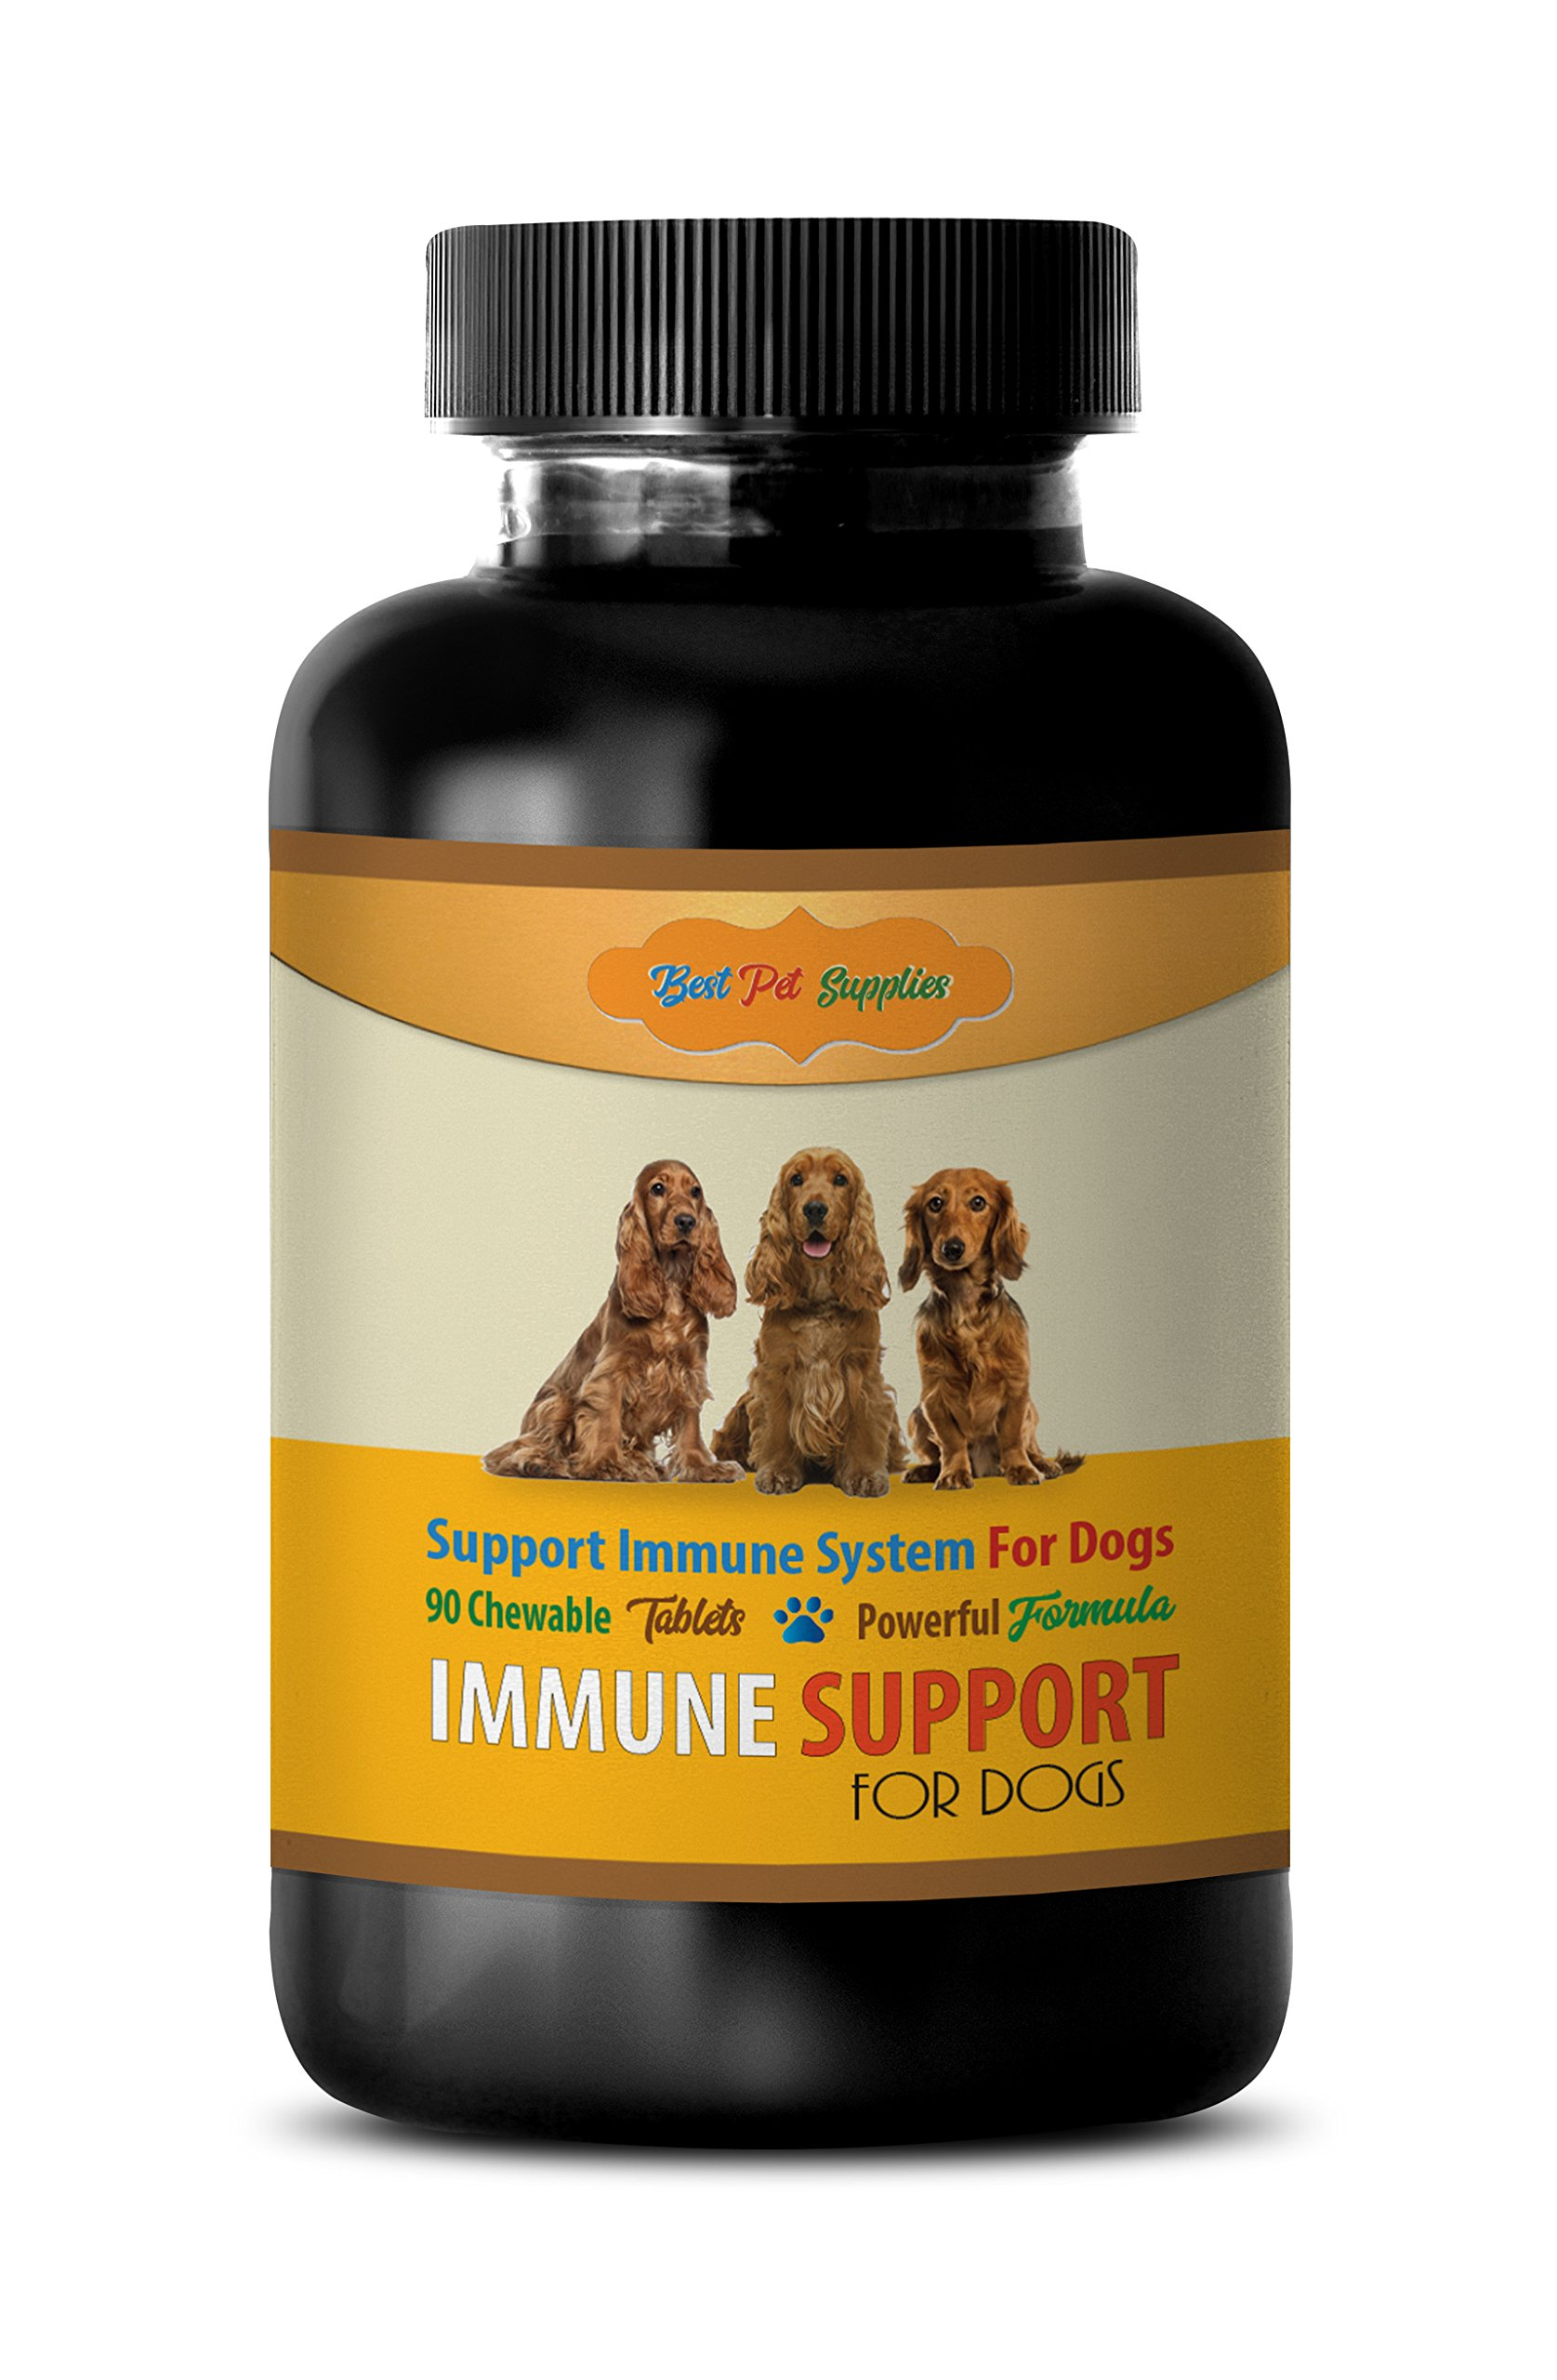 elderly dog supplement - POWERFUL IMMUNE SUPPORT FOR DOGS - BEST IMMUNE FORMULA - CHEWY TREATS - mushrooms for immune system - 90 Chews (1 Bottle)